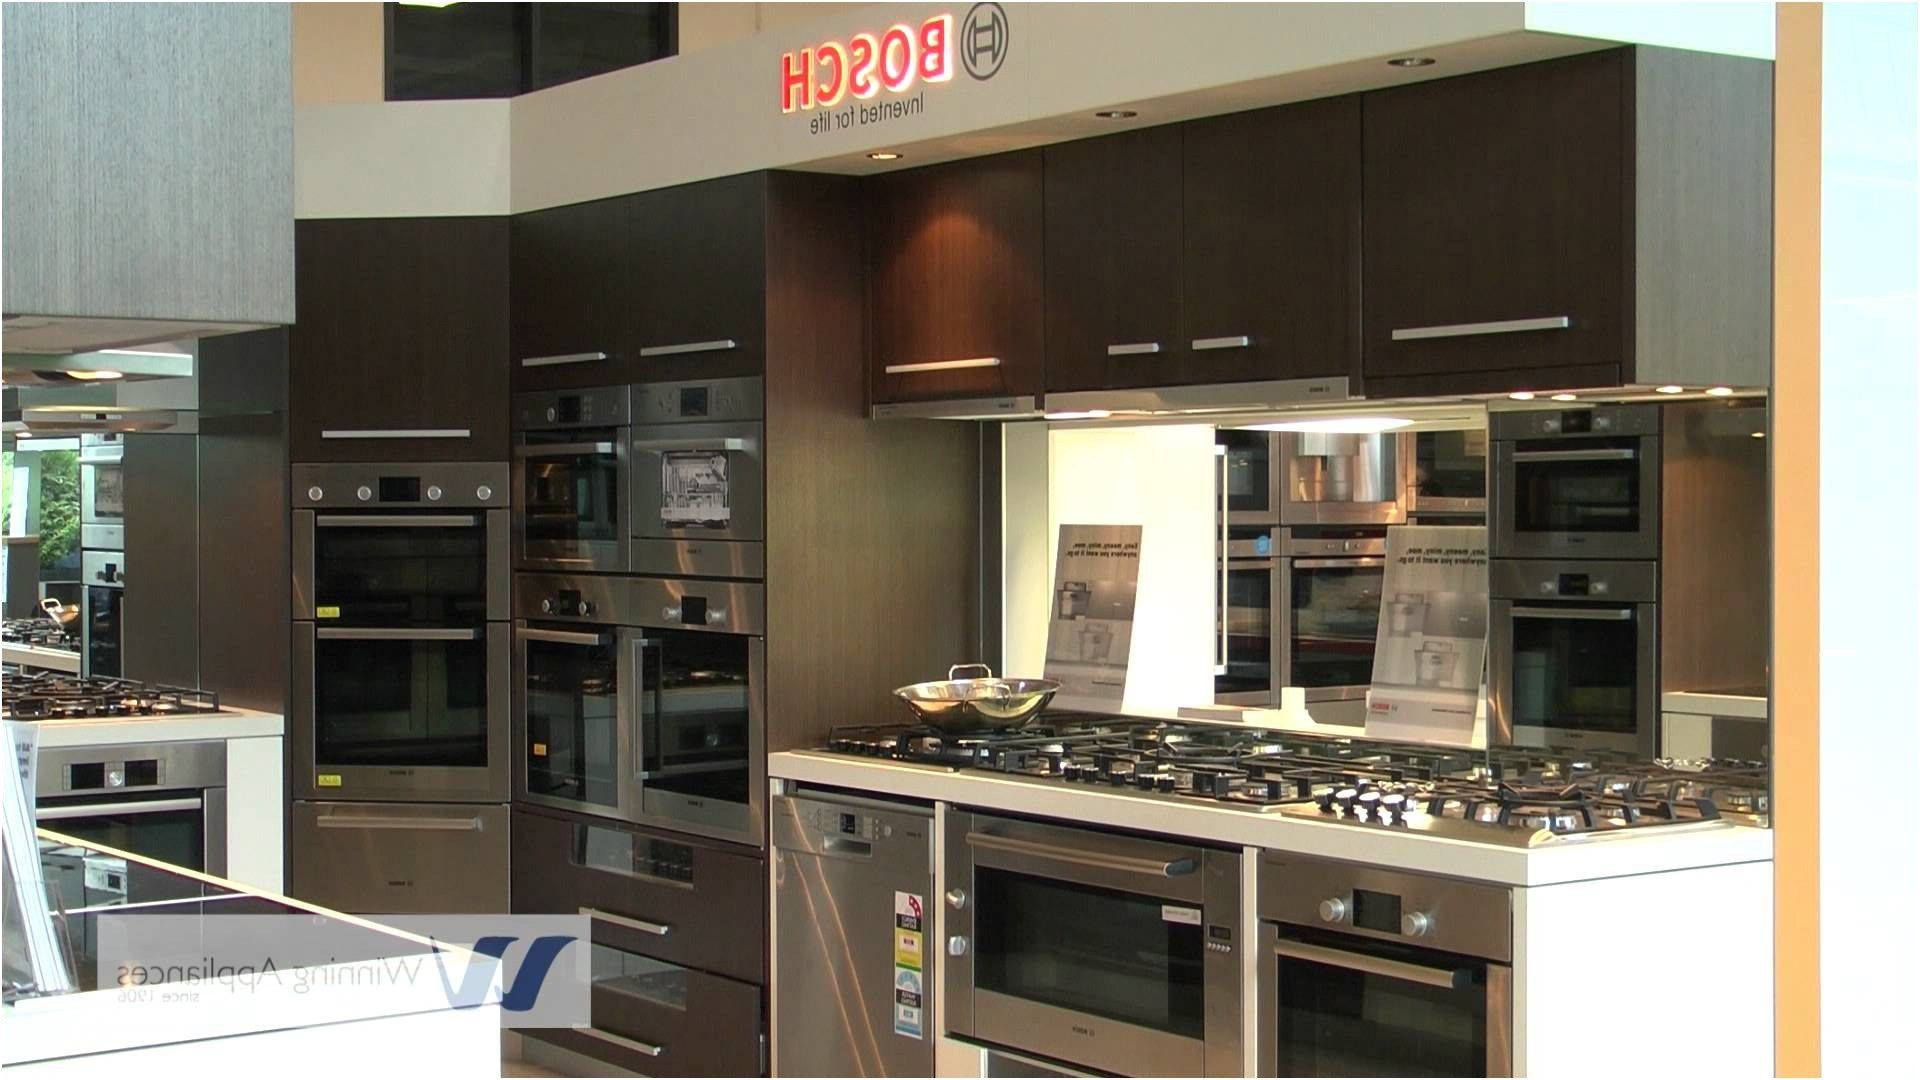 The Latest Kitchen Appliance Trends Winning Appliances Youtube Best Kitchen Design Latest Trends Decorating Inspiration